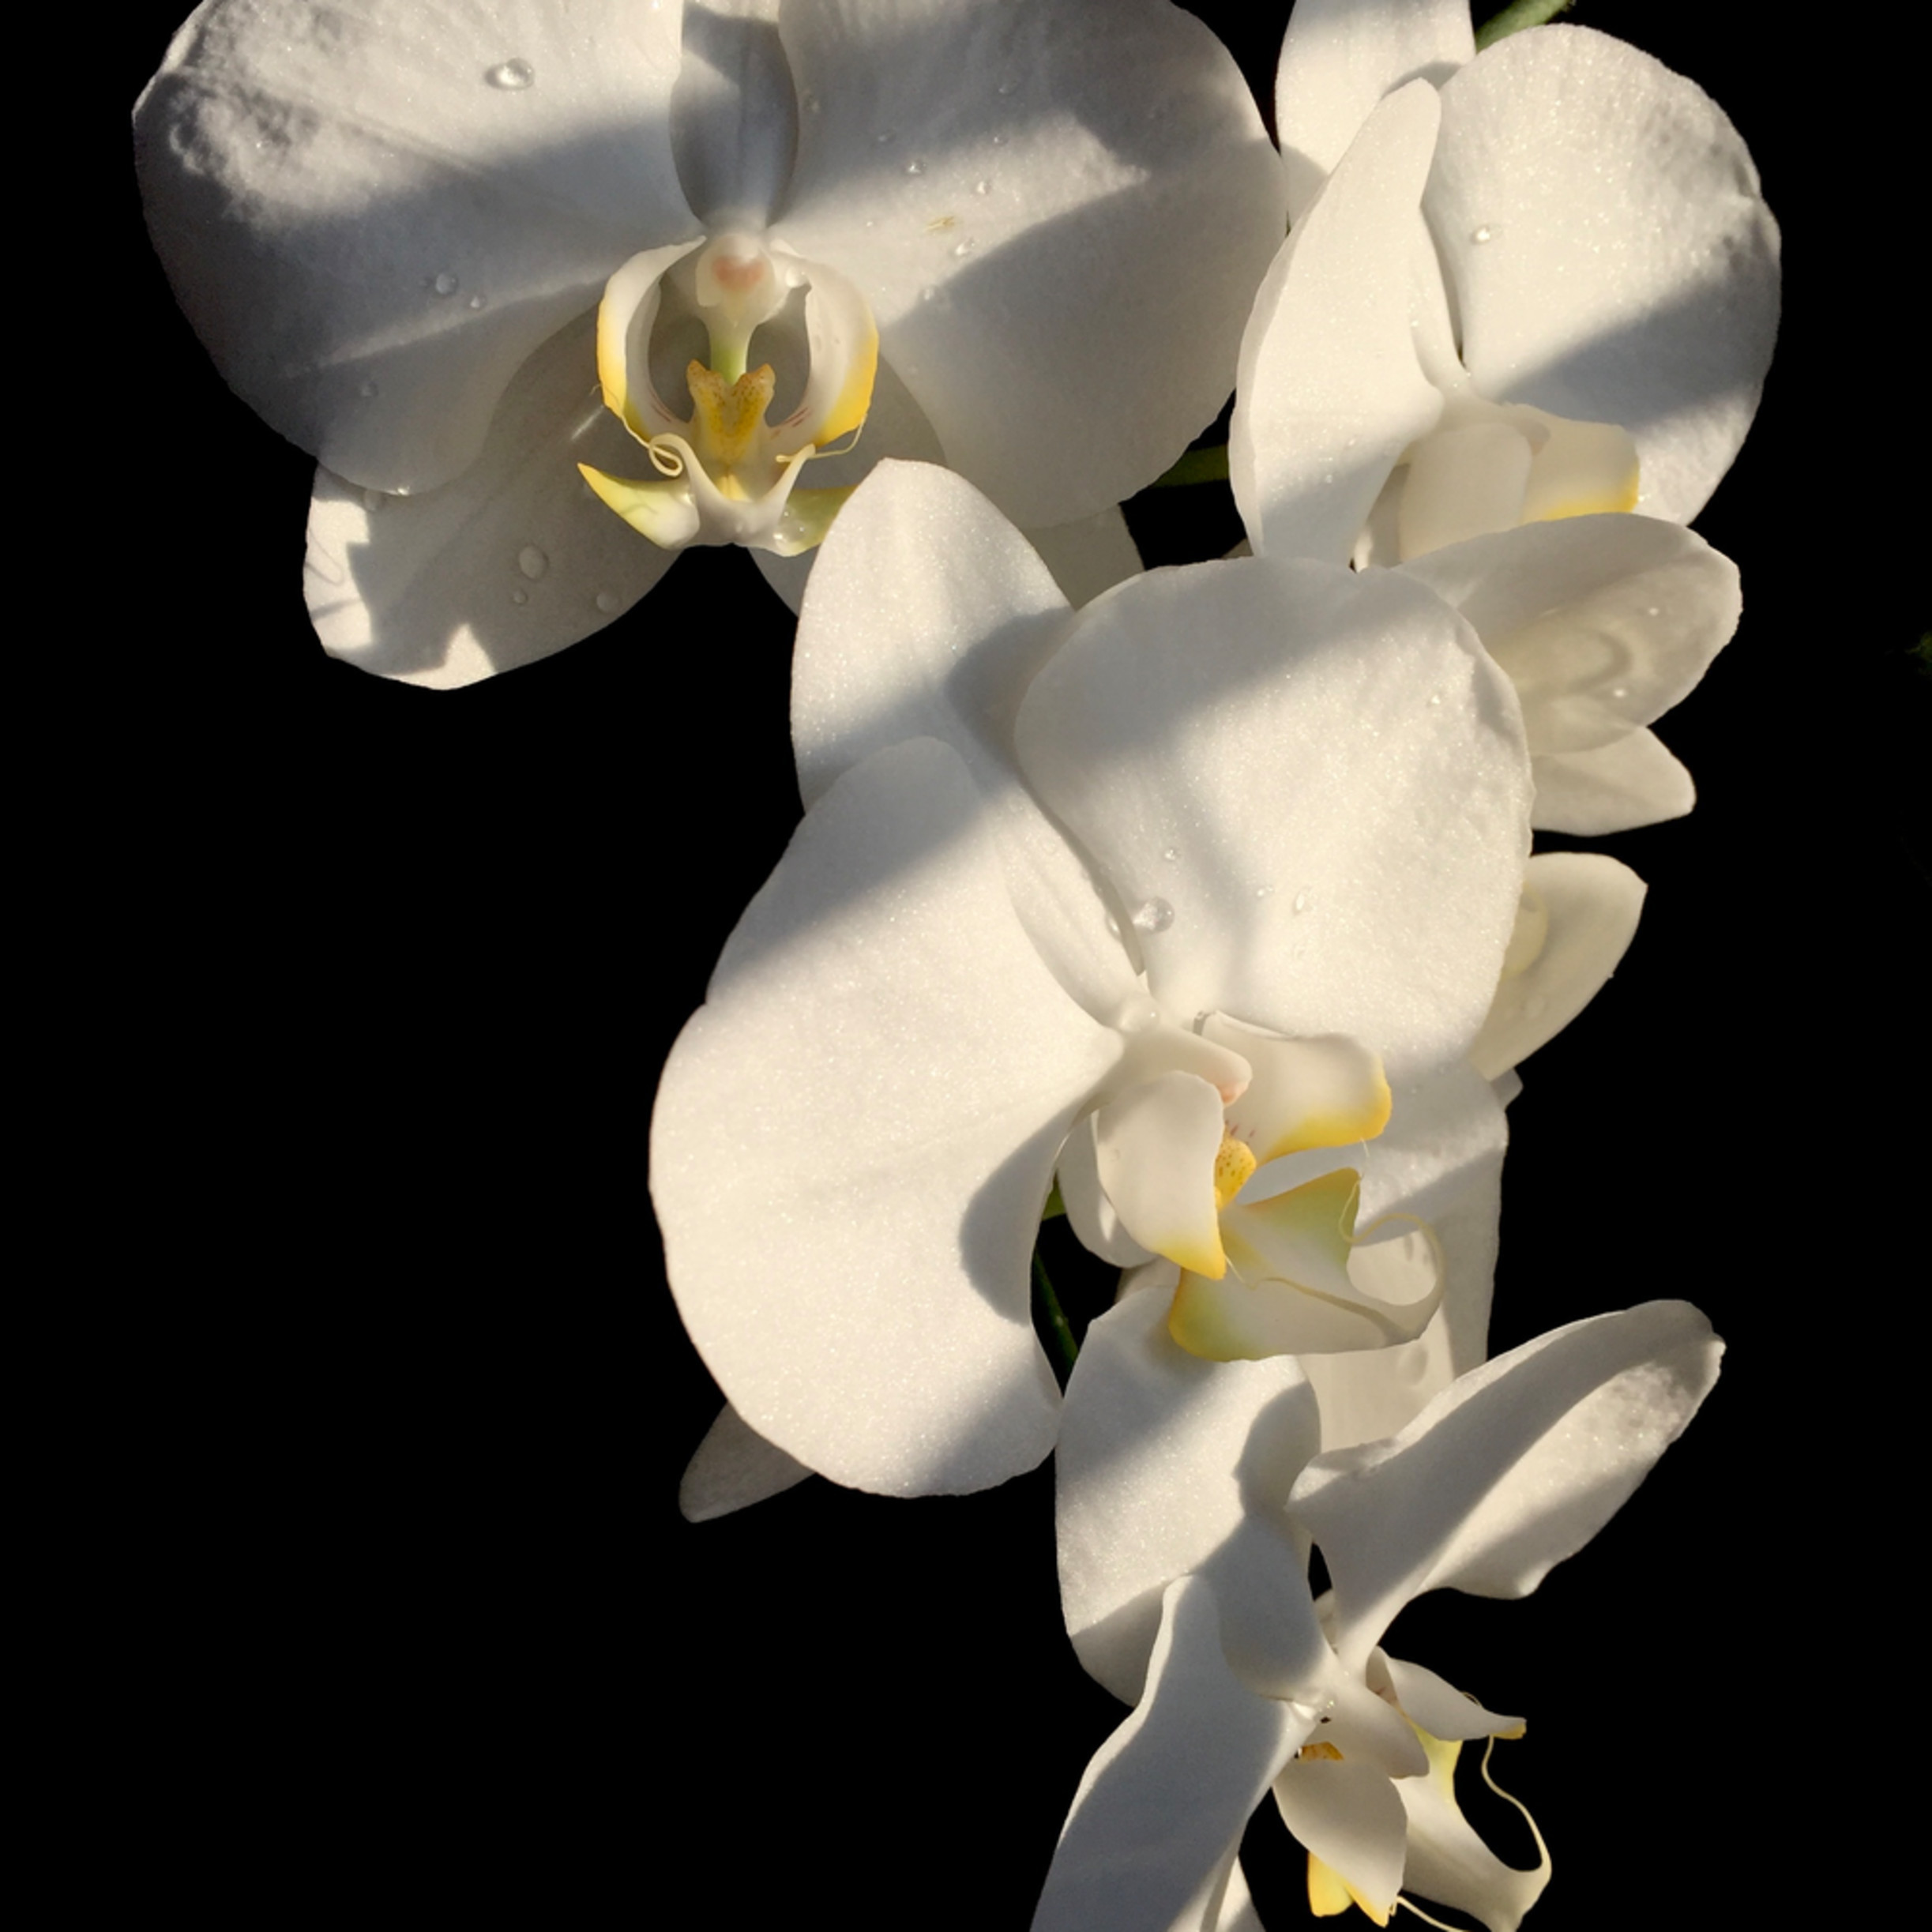 Orchid i7lbz5